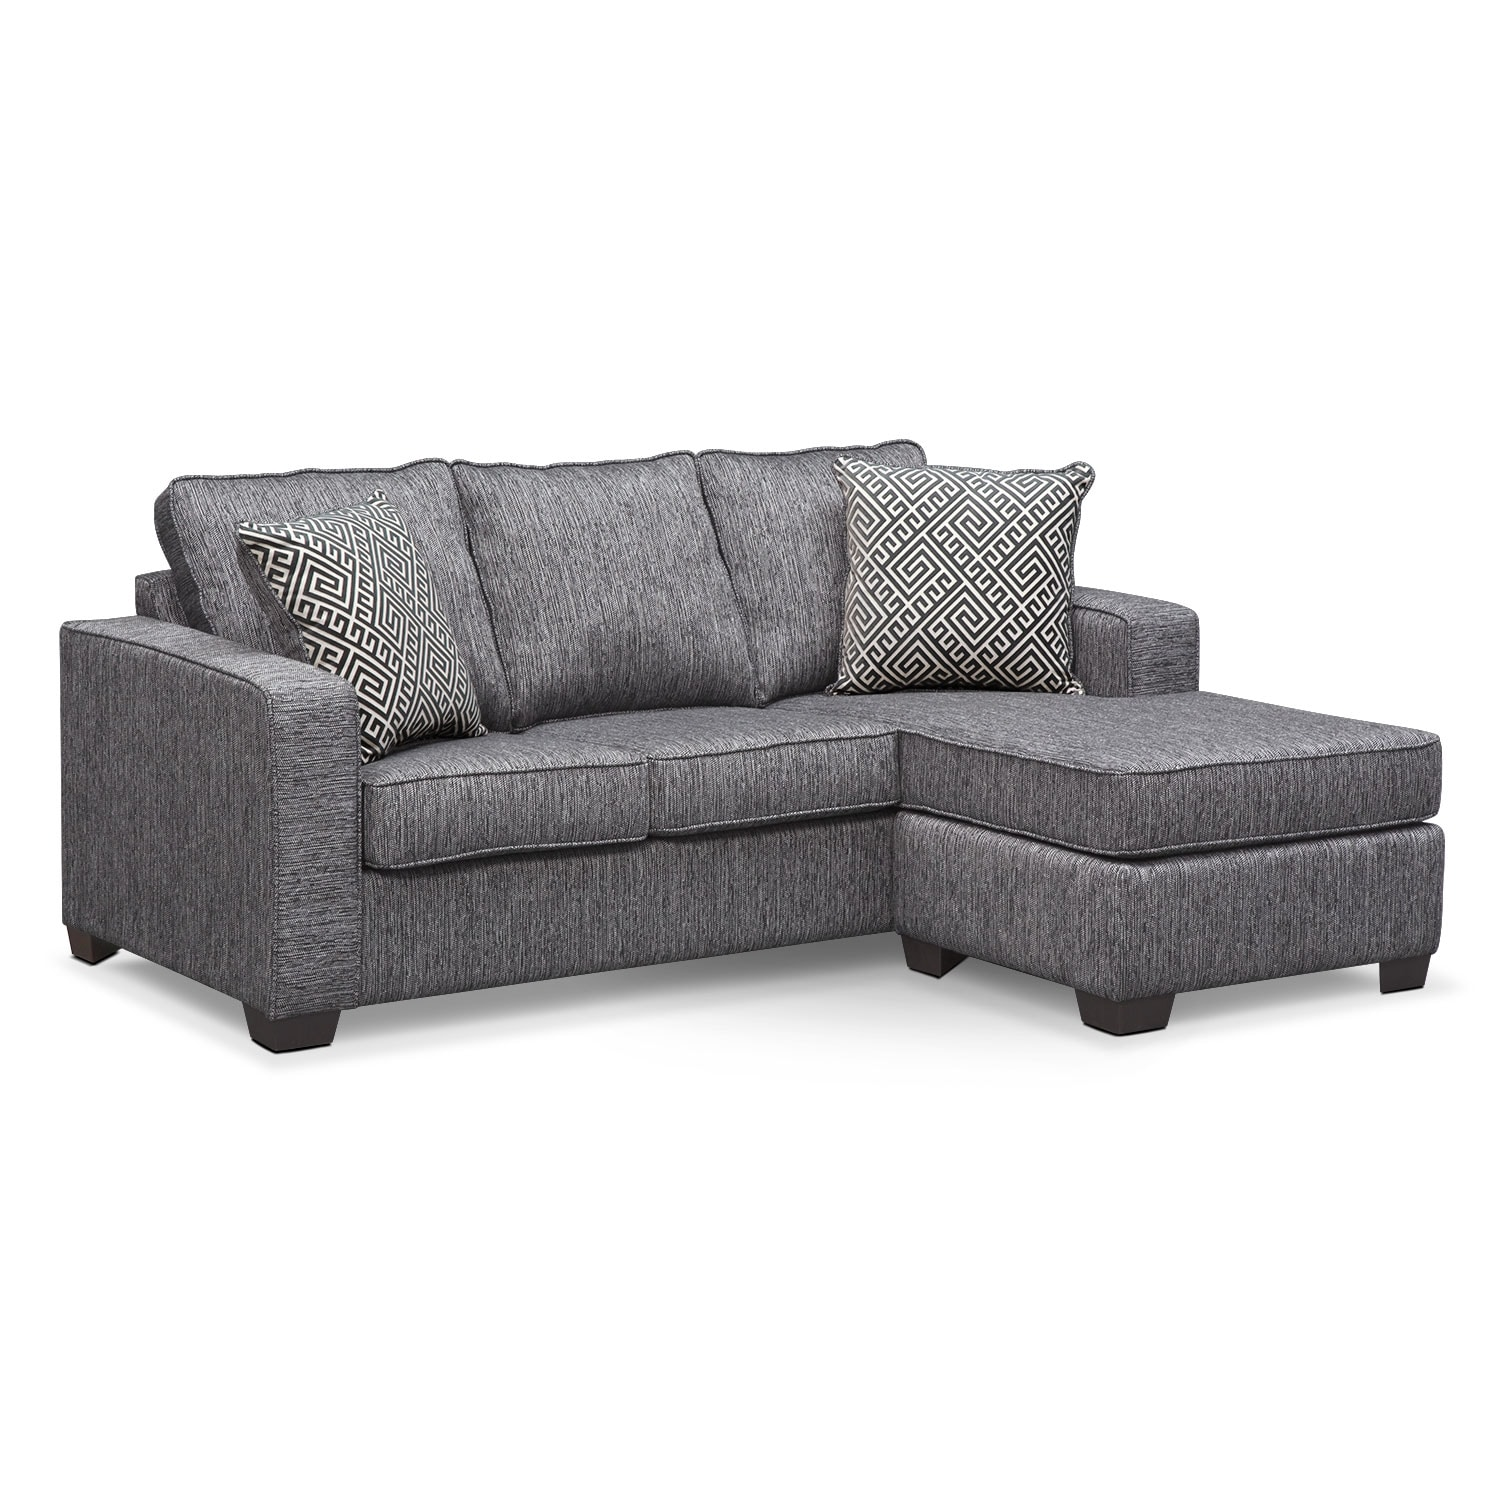 Sterling Innerspring Sleeper Sofa with Chaise - Charcoal